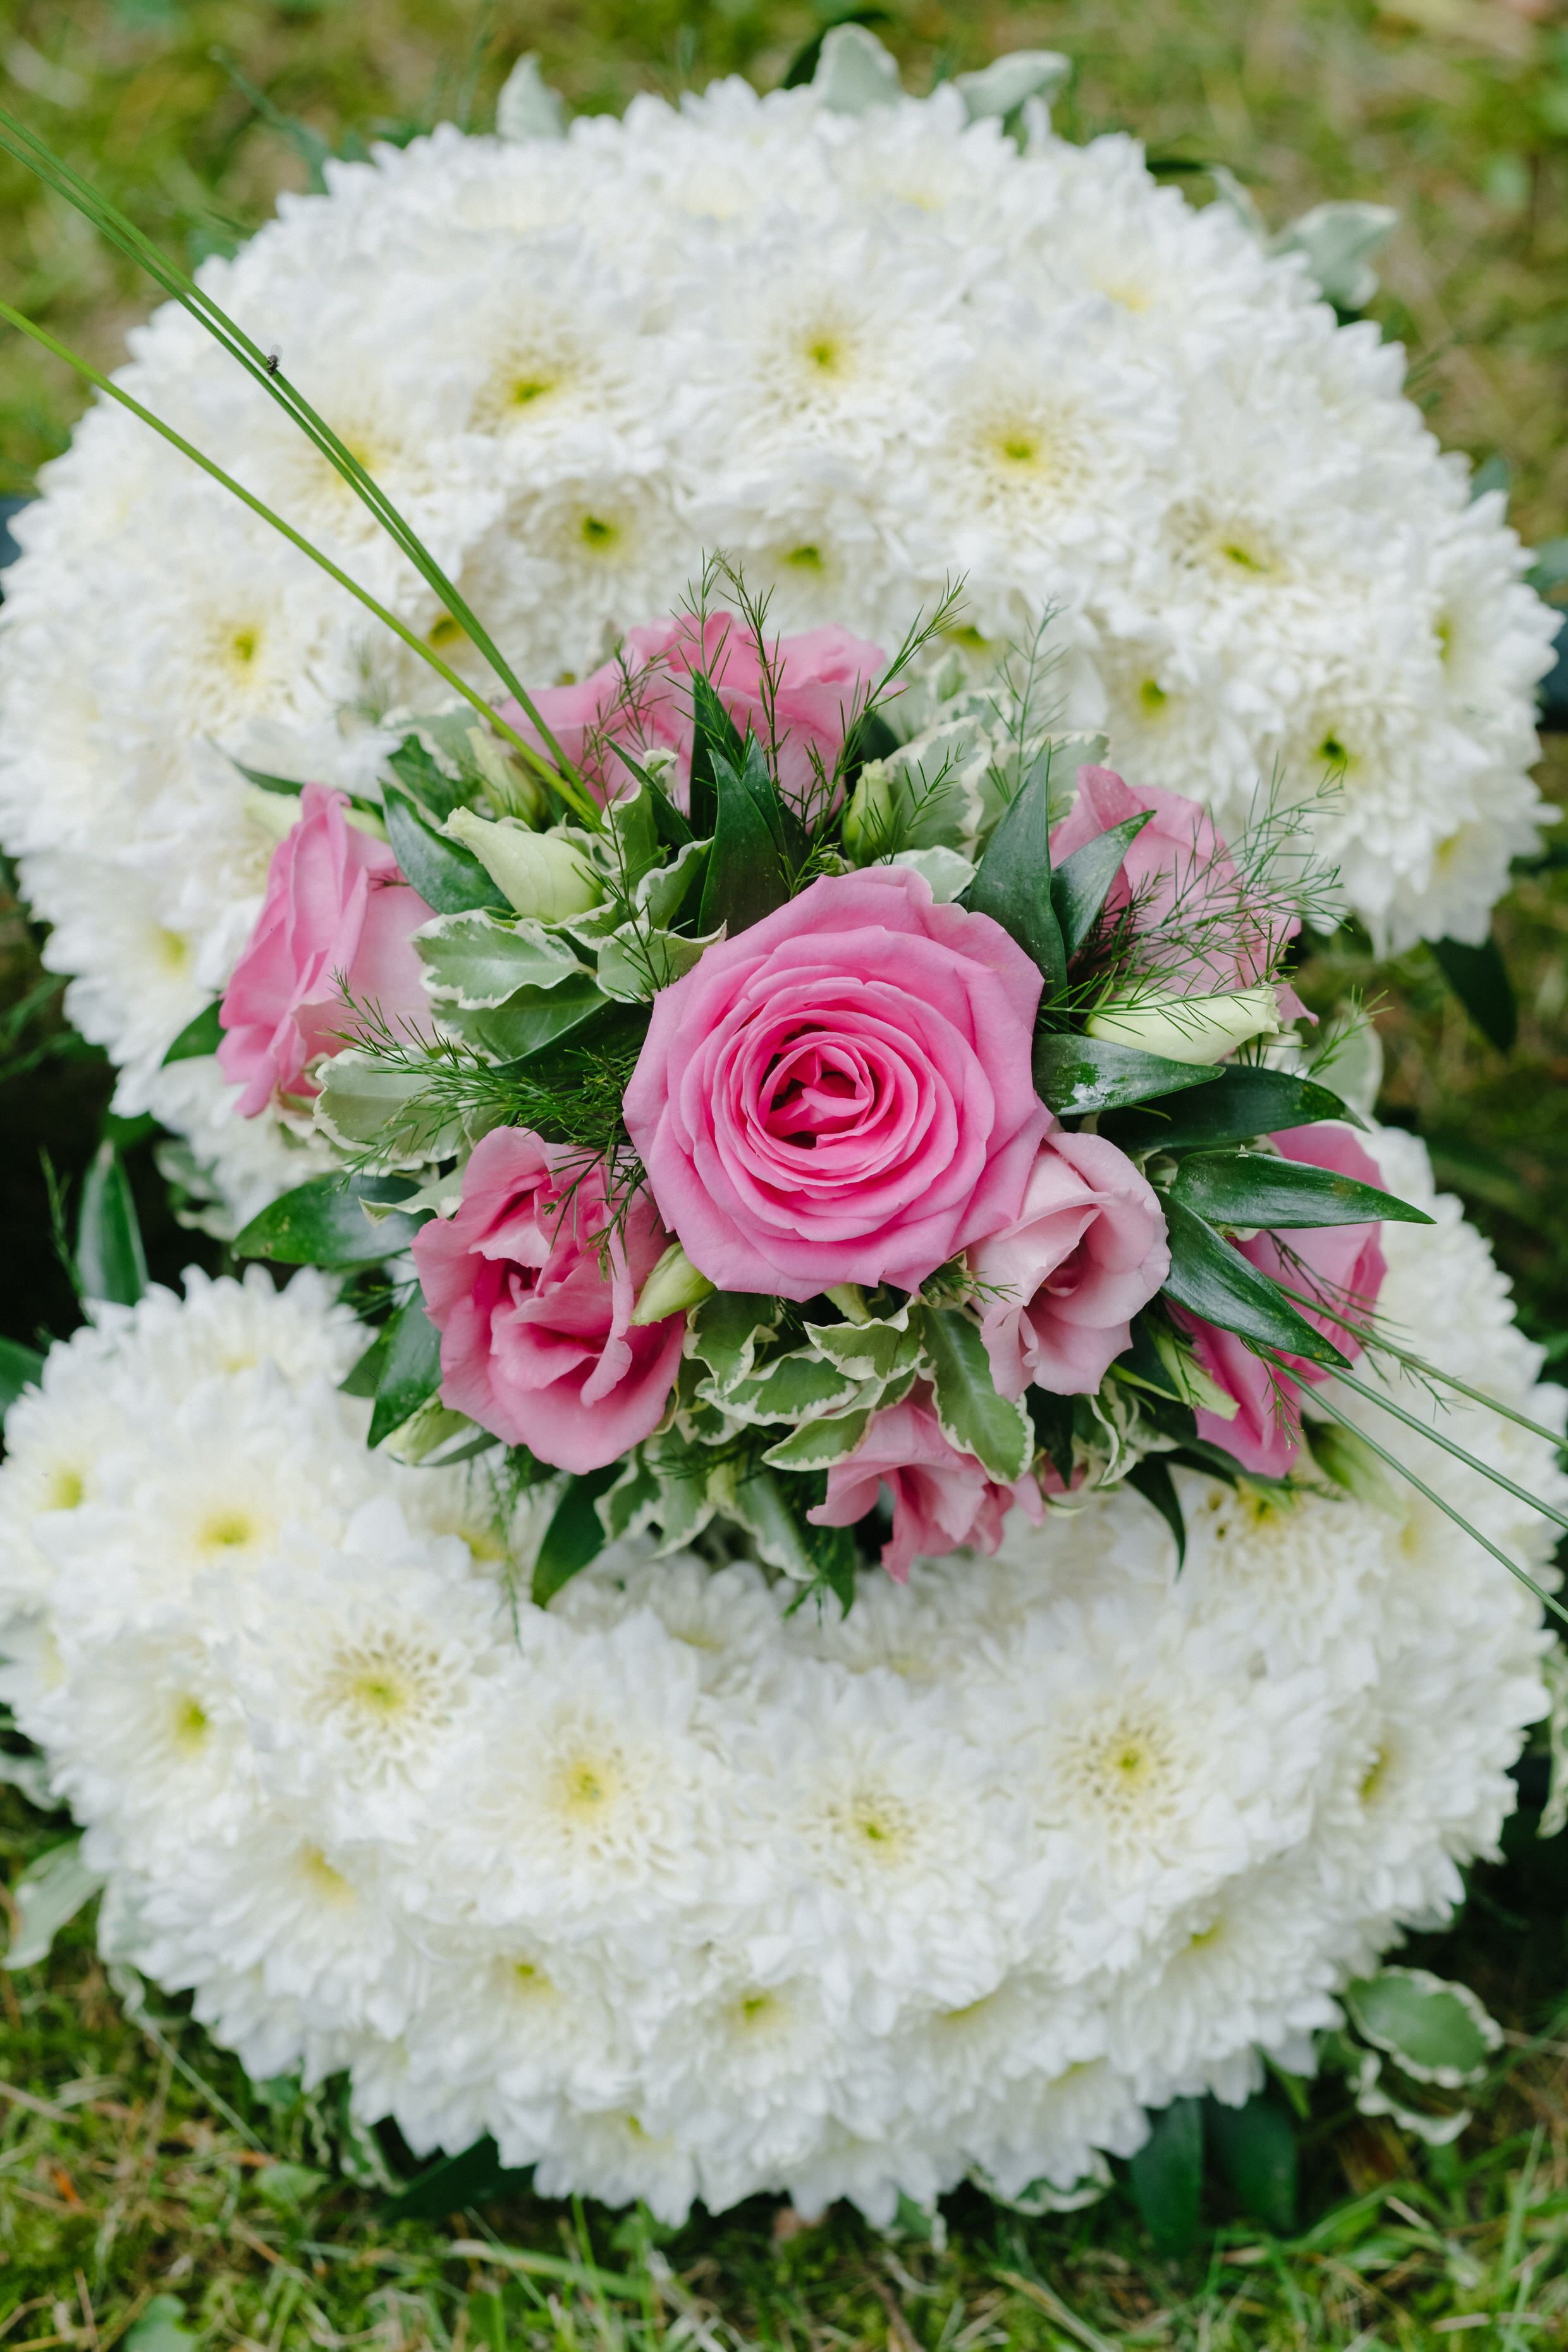 Funeral Tribute - 'Letter S' in Pink, Foliage Edge.jpg